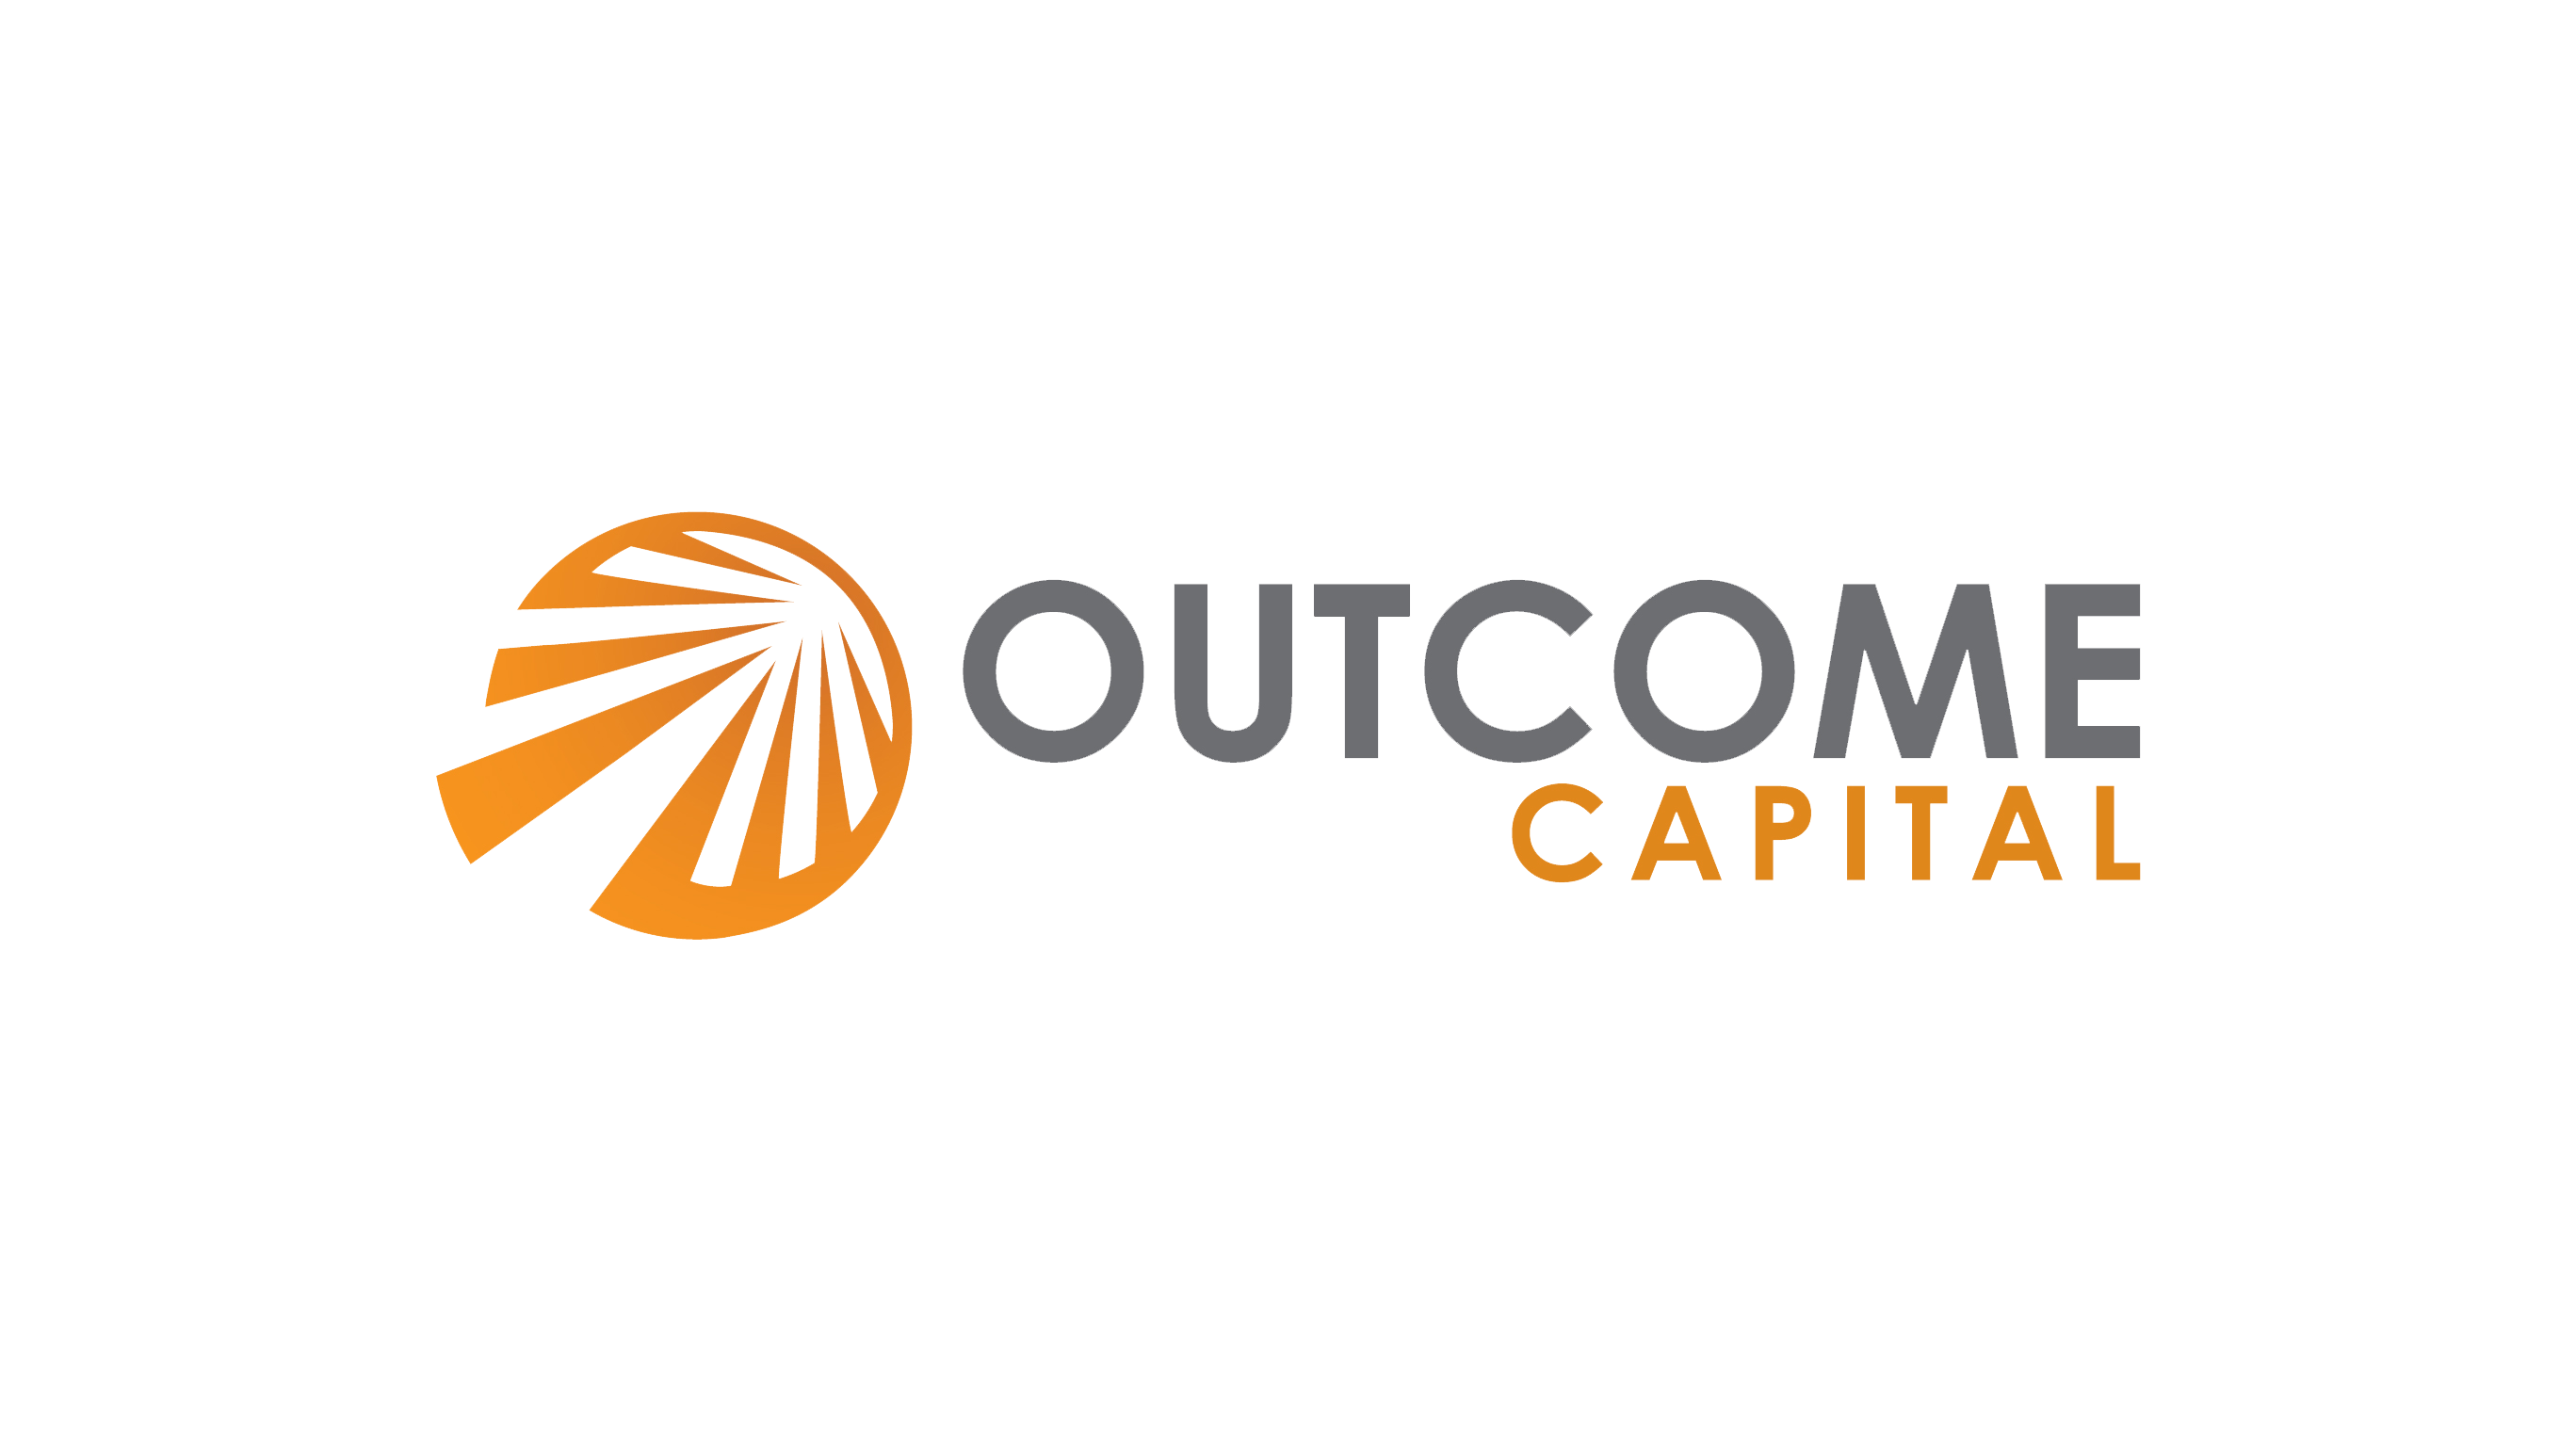 Outcome Capital logo